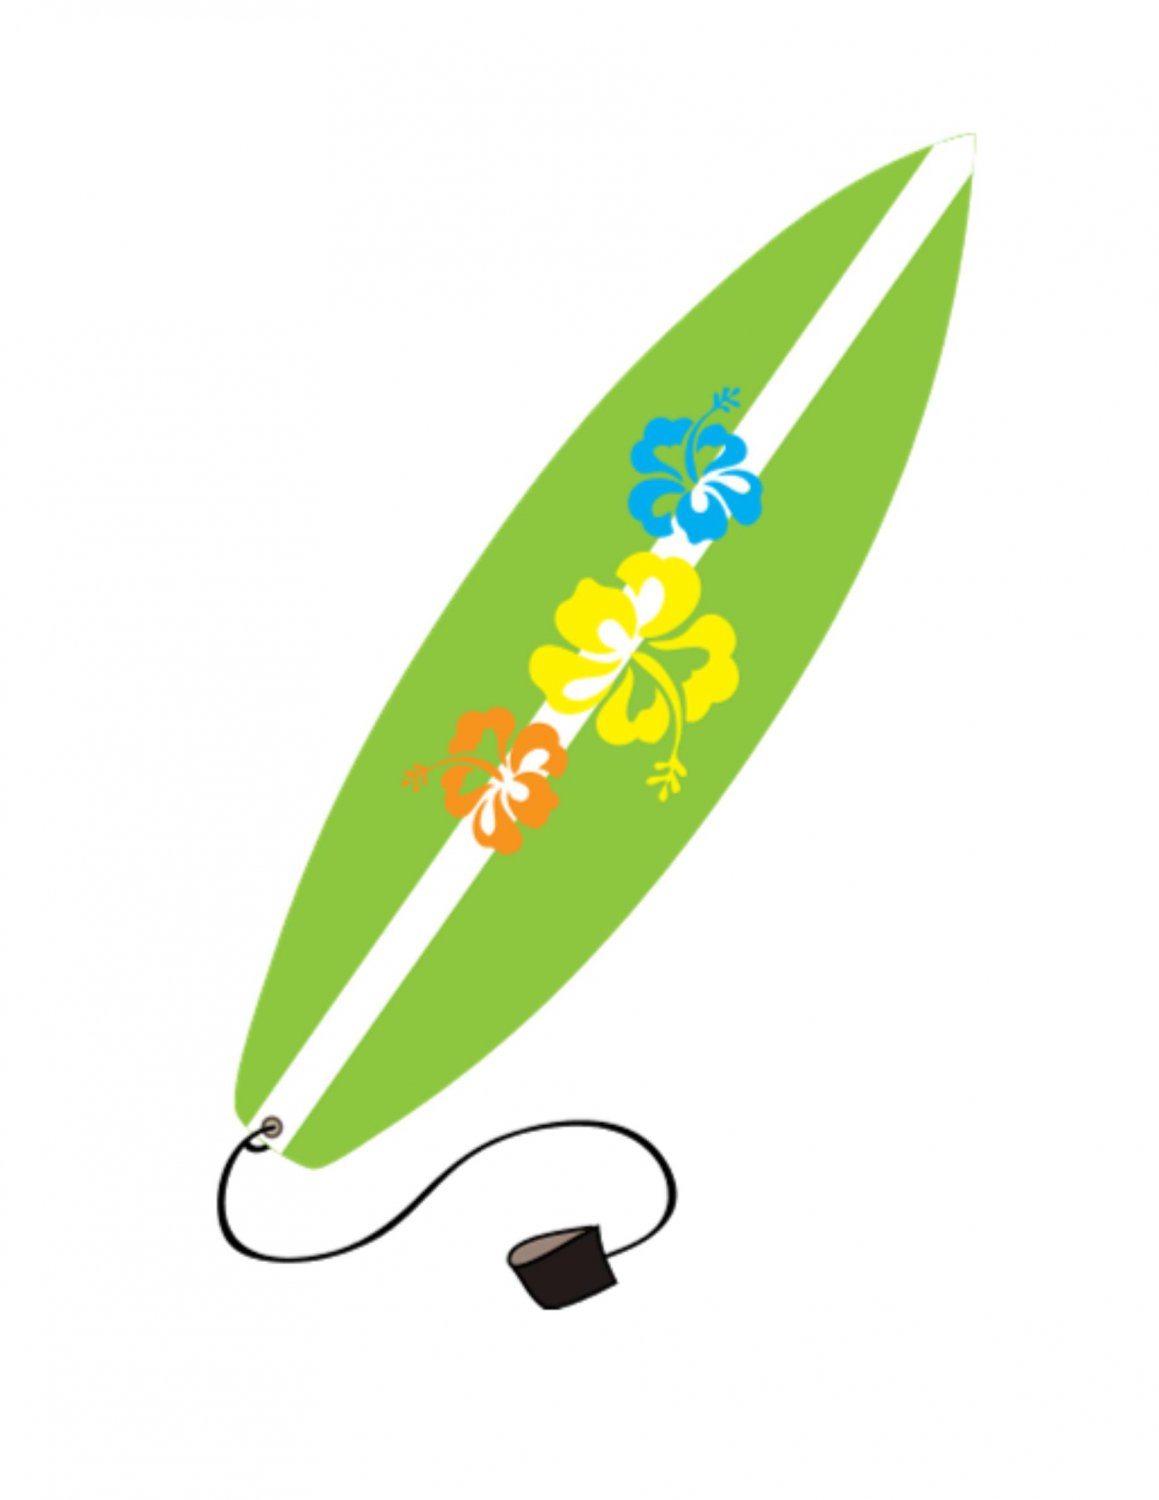 Free Surfboard Cliparts, Download Free Clip Art, Free Clip.